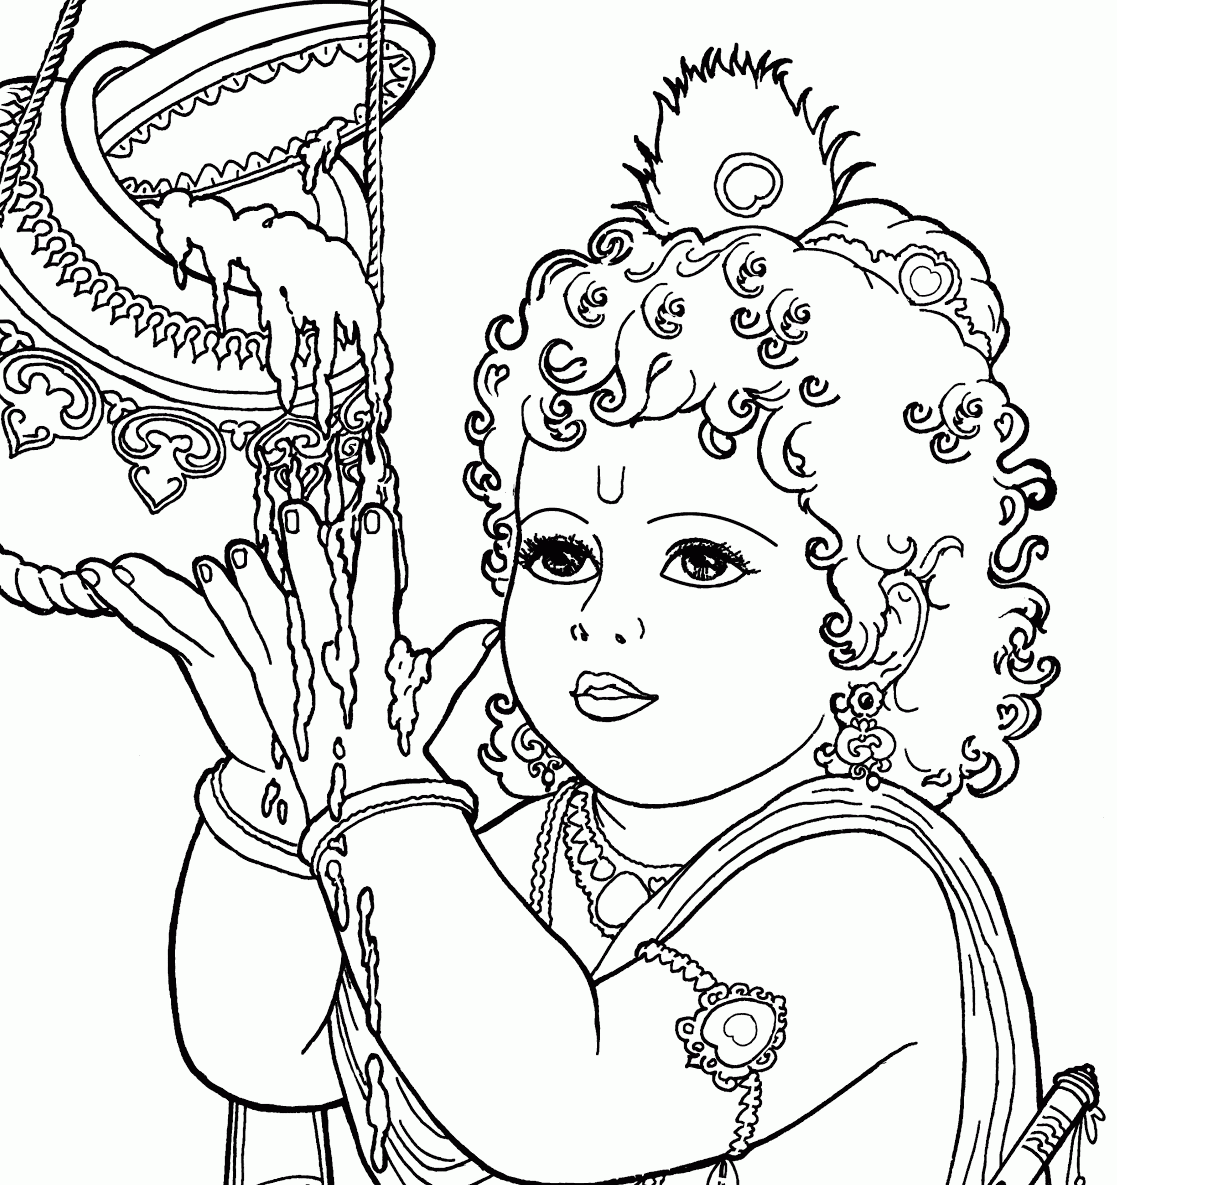 coloring pages on god krishna - photo#13